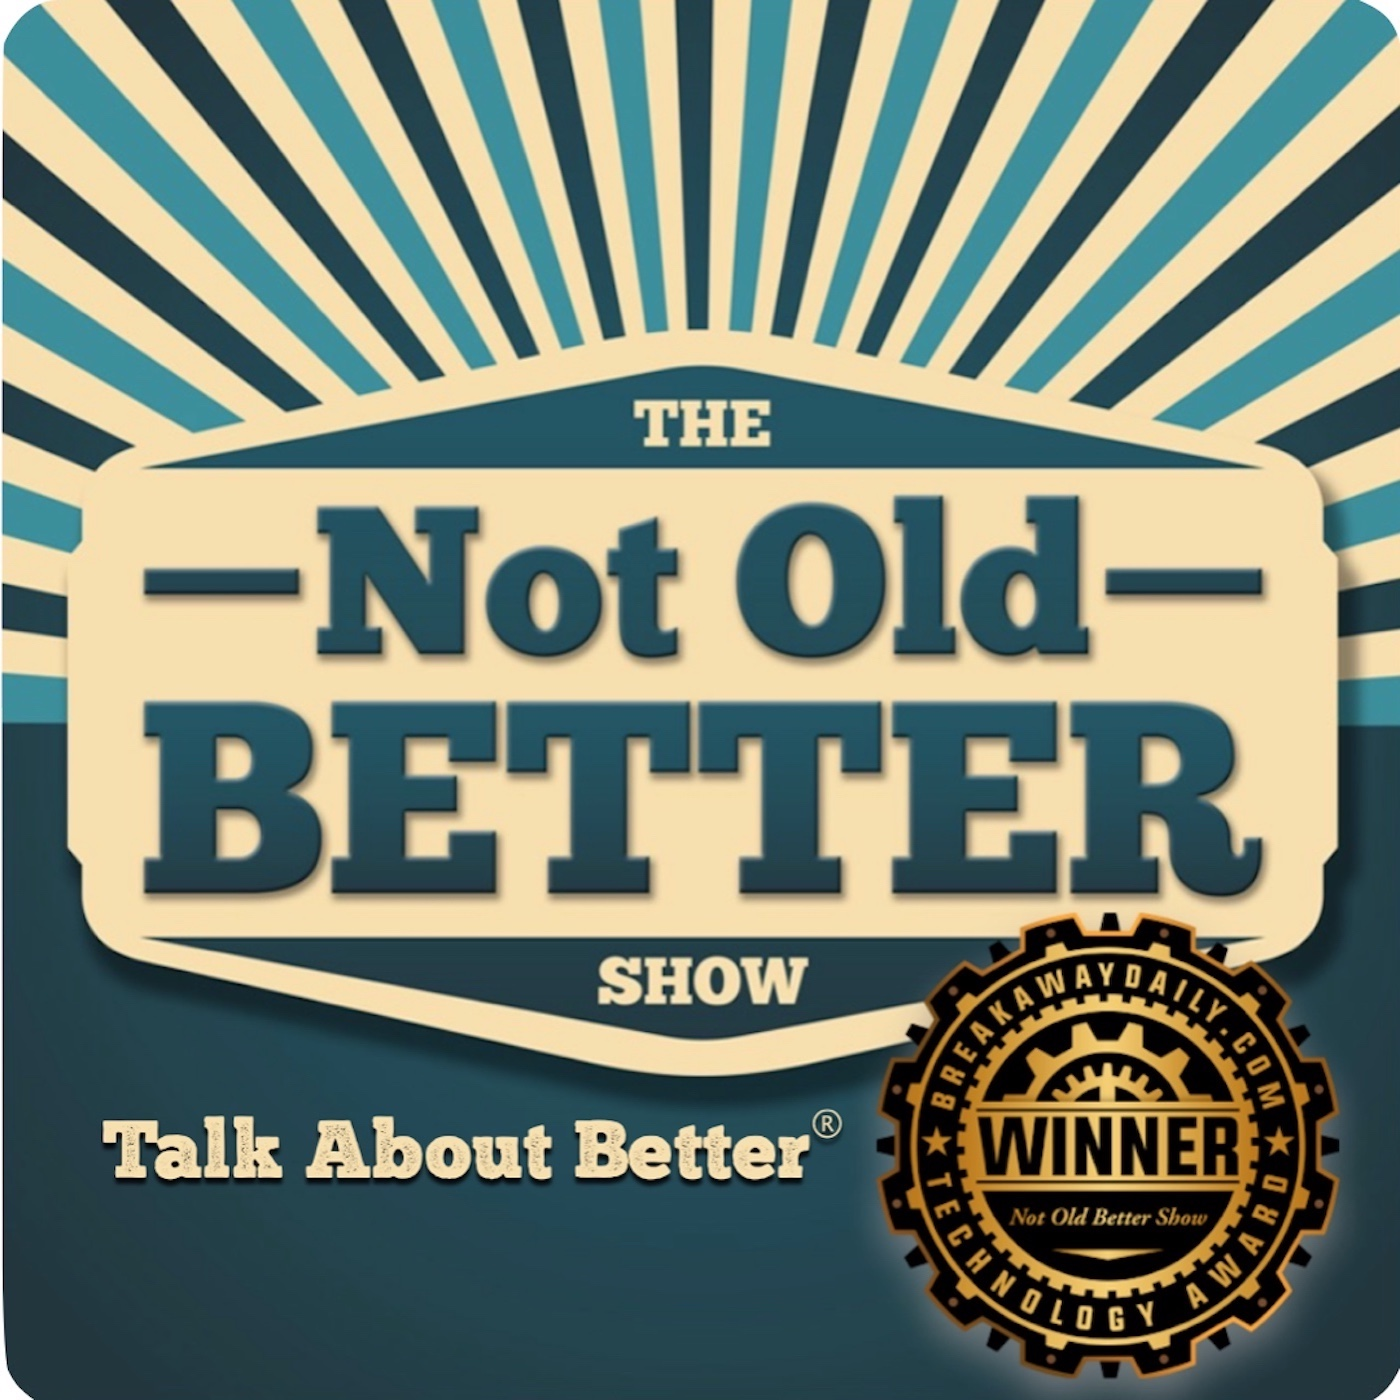 The Not Old - Better Show logo